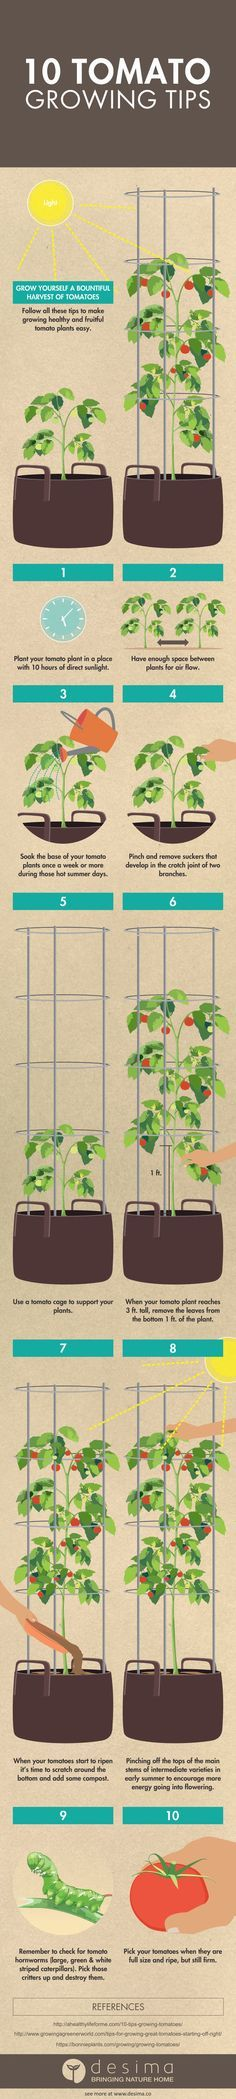 Follow all these tips to make growing healthy and fruitful tomato plants easy. 1. Plant your tomato plant in a place with 10 hours of direct sunlight. 2. Have enough space between plants for air flow. 3. Soak the base of your tomato plants once a week or more during those hot summer days. 4. Pinch and remove suckers that develop in the crotch joint of two branches. 5. Use a tomato cage to support your plants. 6. When your tomato plant reaches 3 ft. tall, remove the leaves from the...